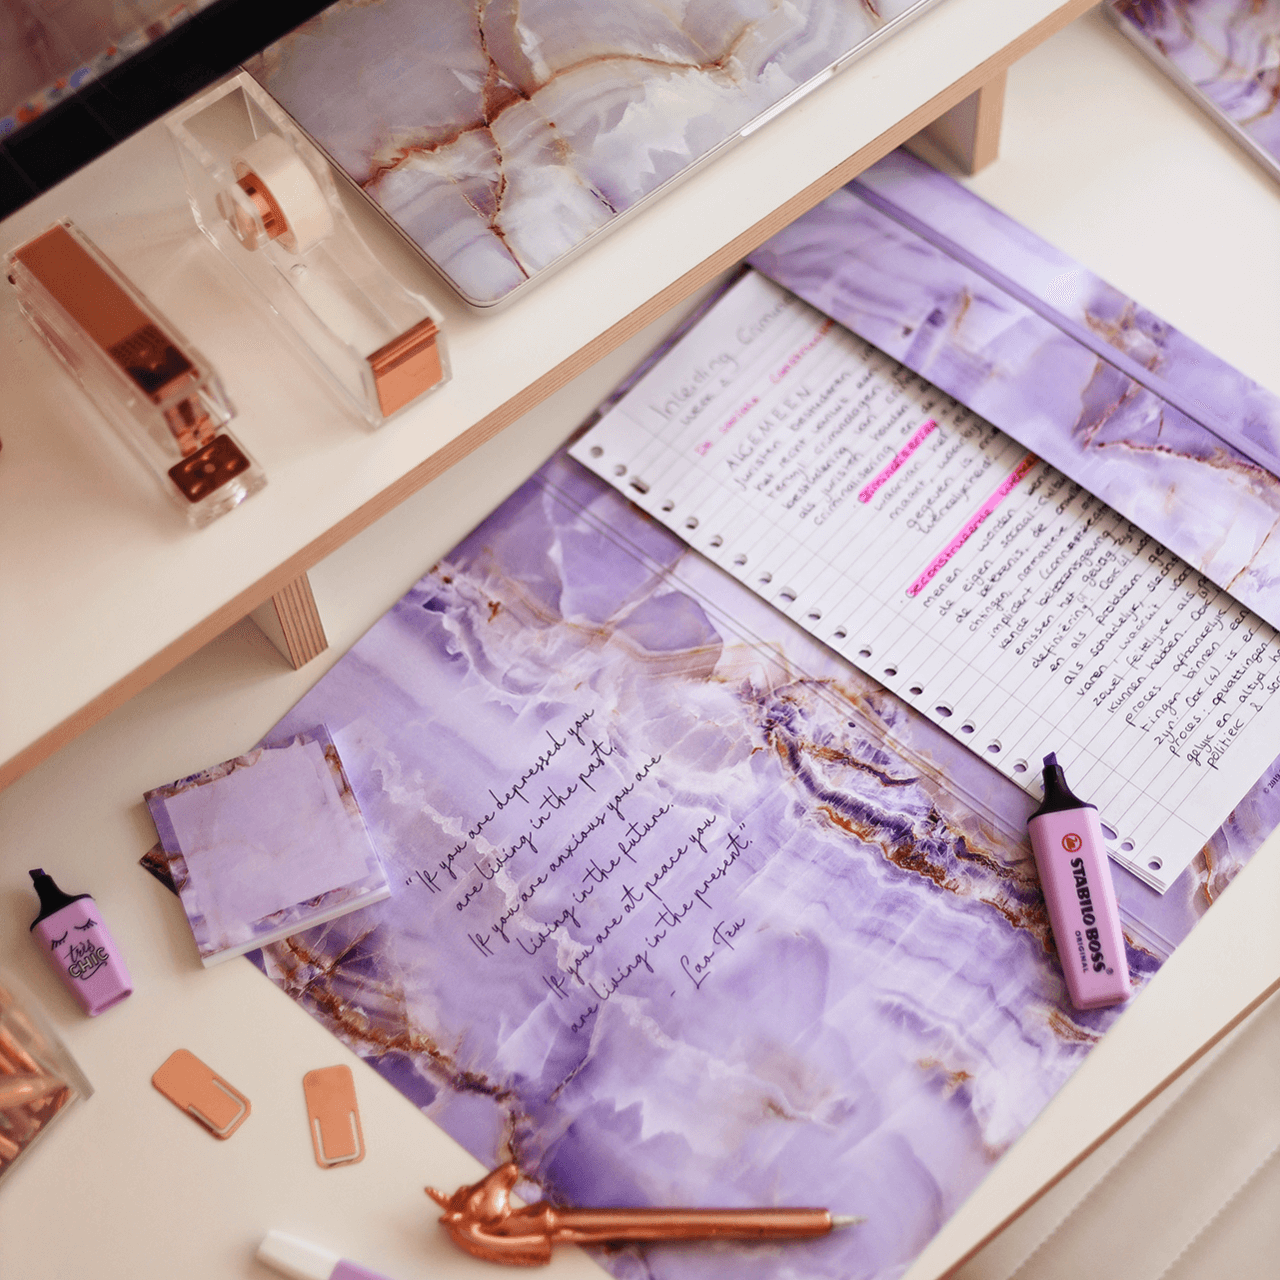 Supplied by Lily Document Folder in Luxurious Amethyst